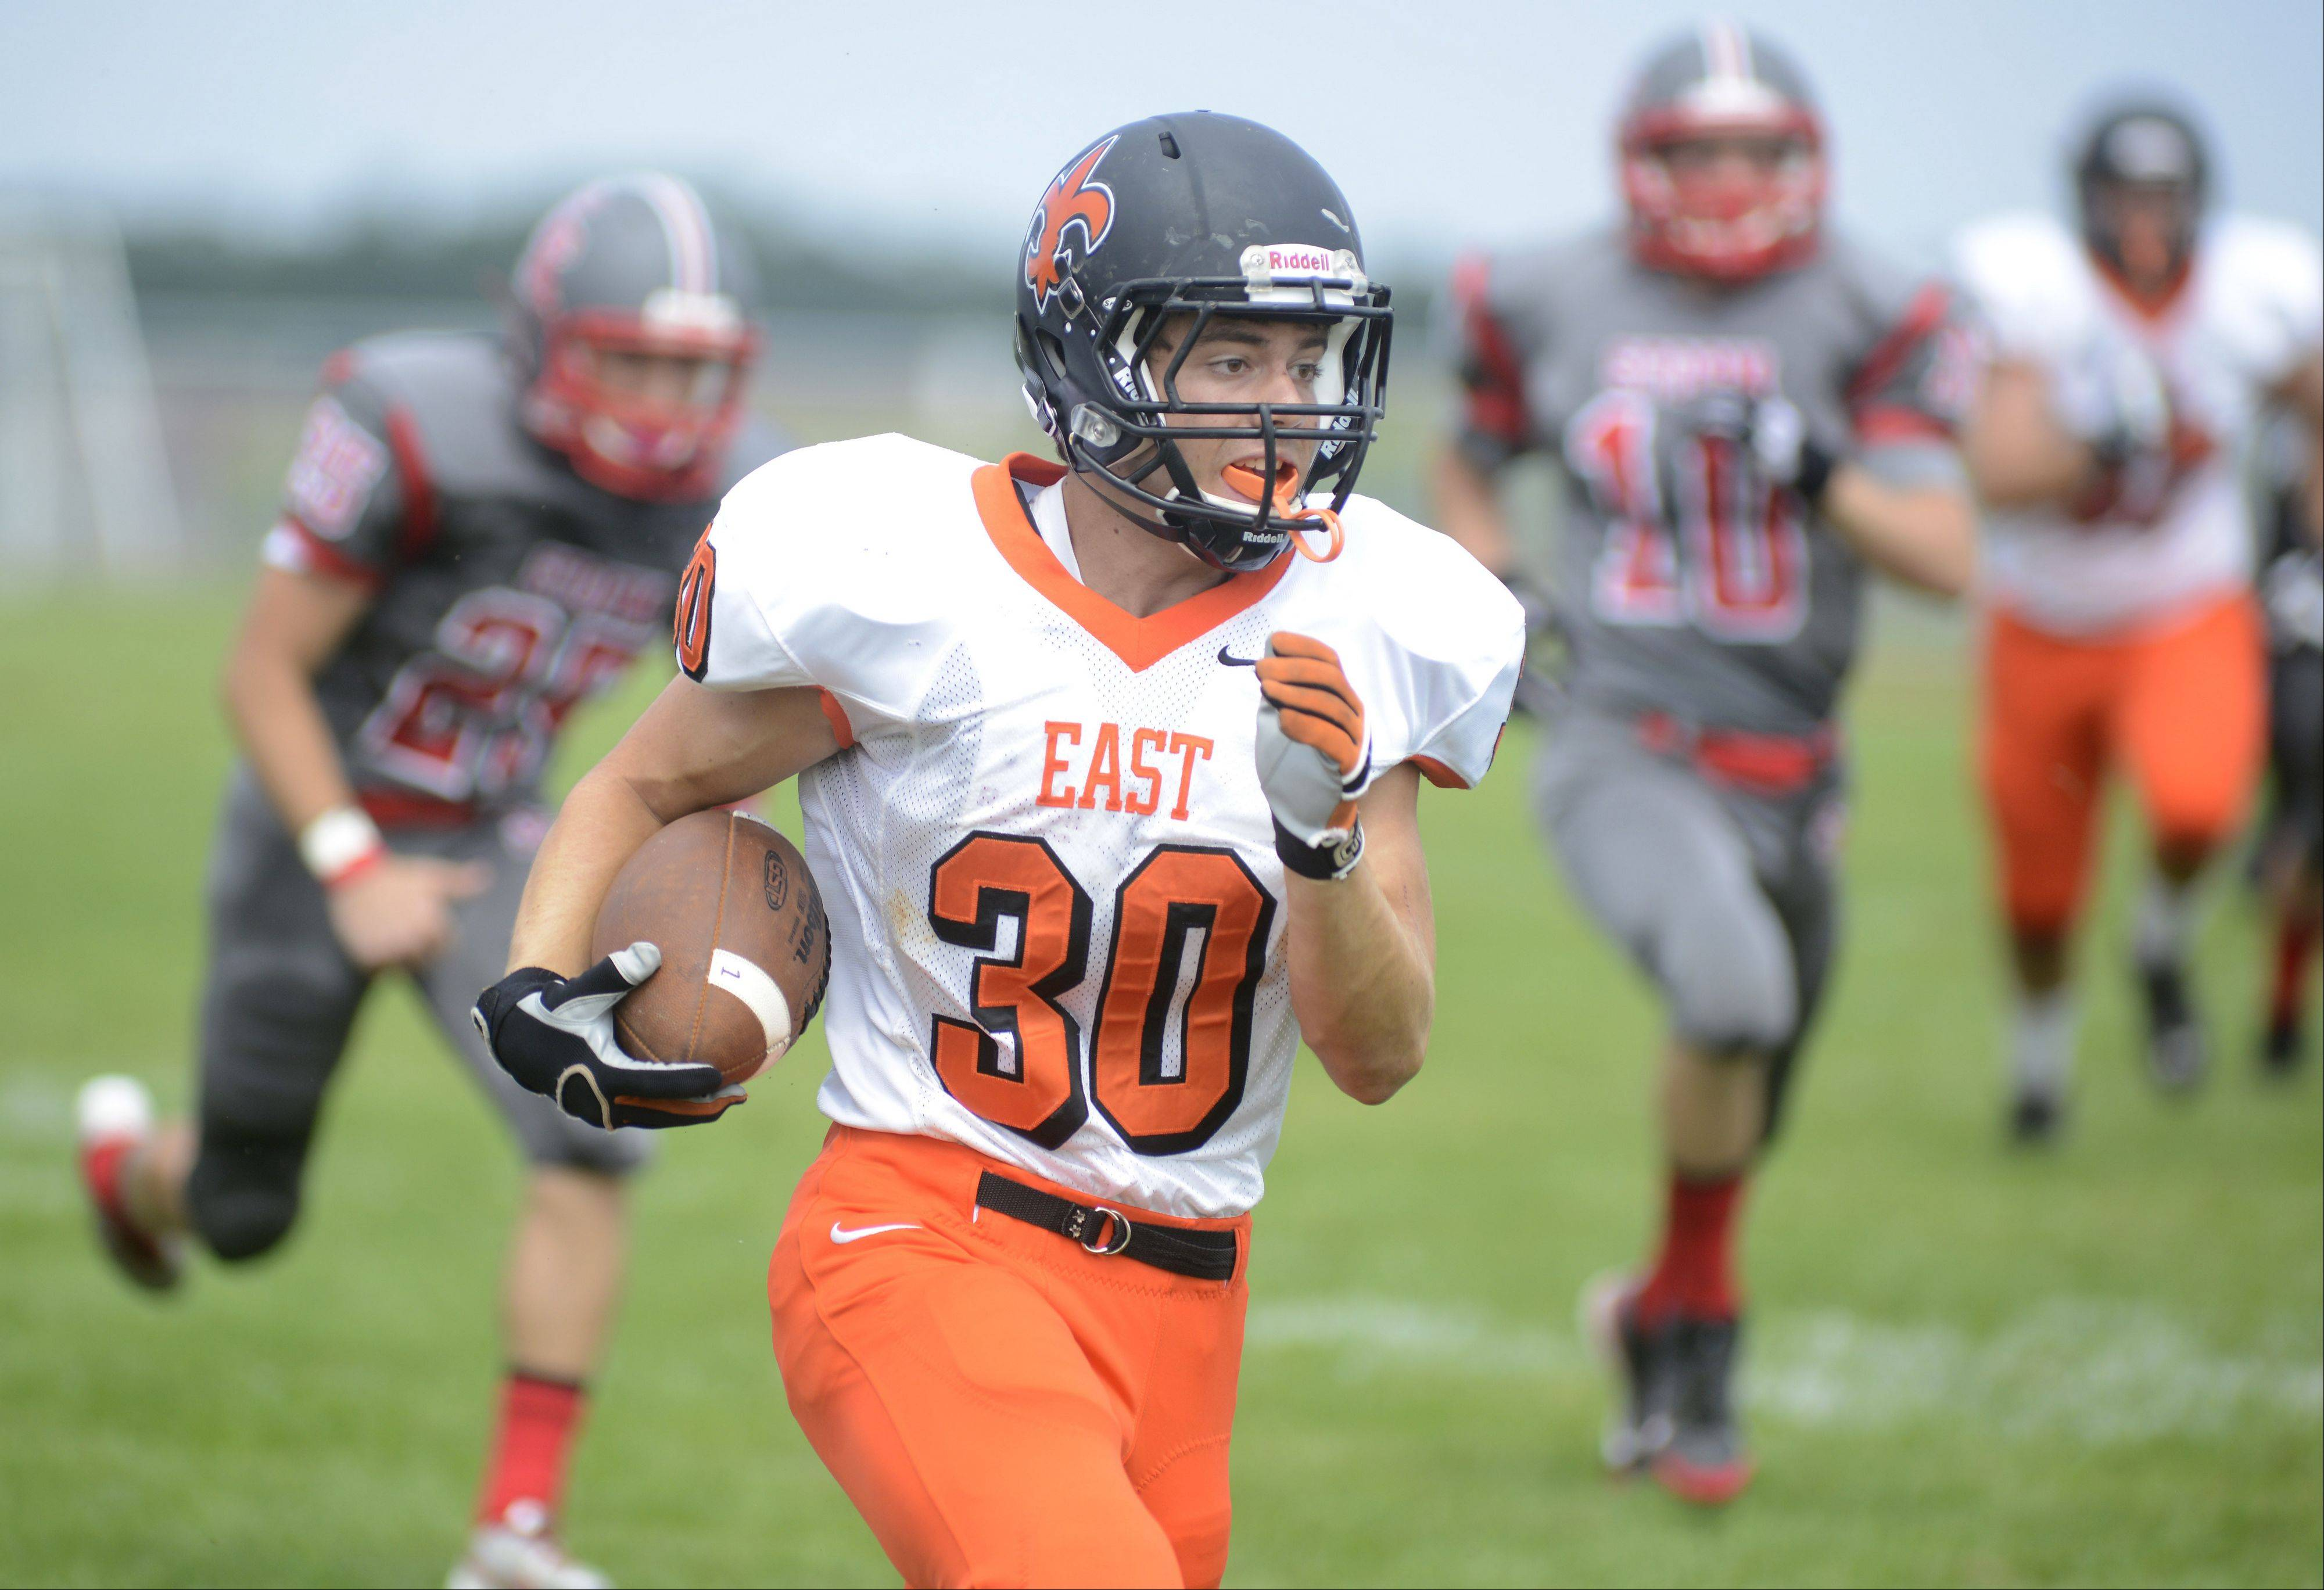 Laura Stoecker/lstoecker@dailyherald.com St. Charles East's Mitch Munroe runs down the sideline on his way to making the first touchdown of the game in the first quarter vs. South Elgin on Saturday, August 31.